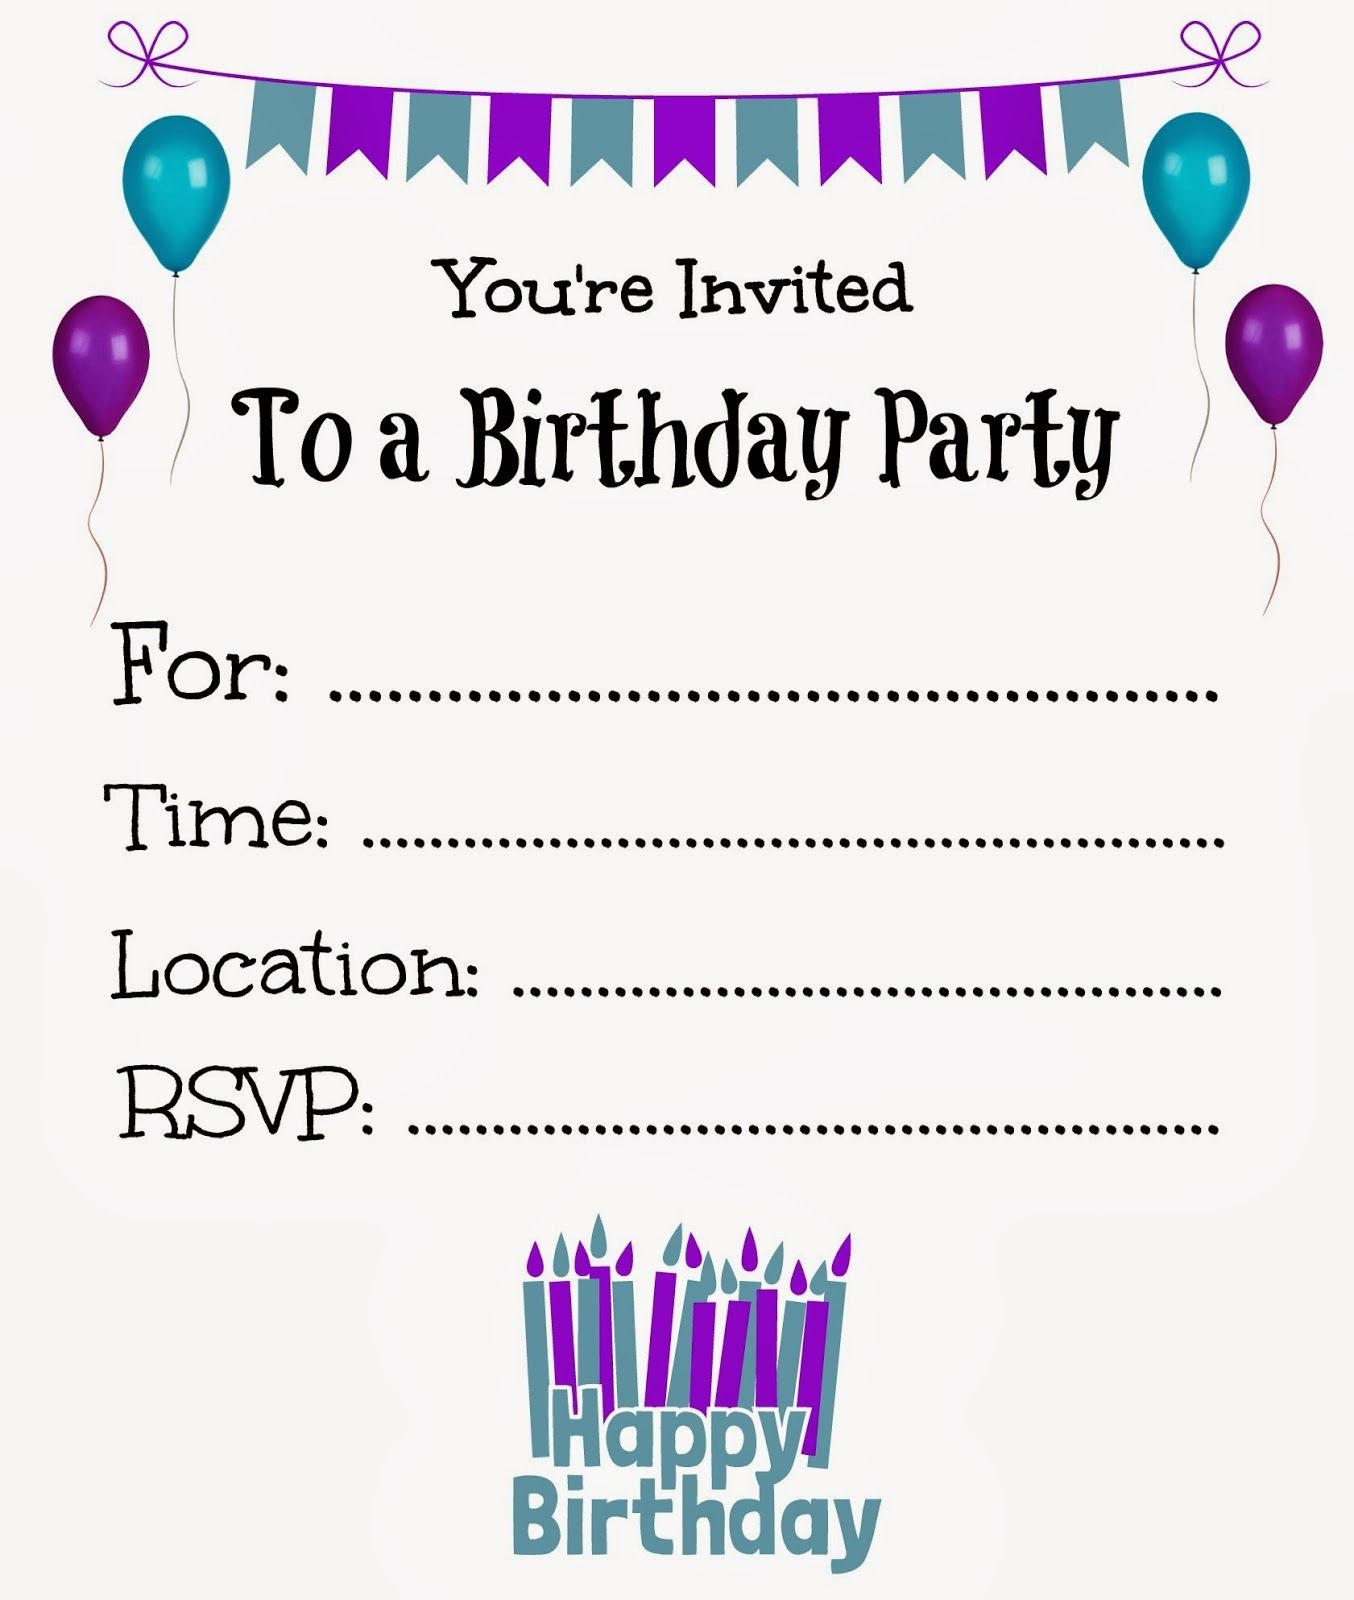 Free Printable Birthday Invitations For Kids #freeprintables - Free Printable Birthday Party Invitations With Photo